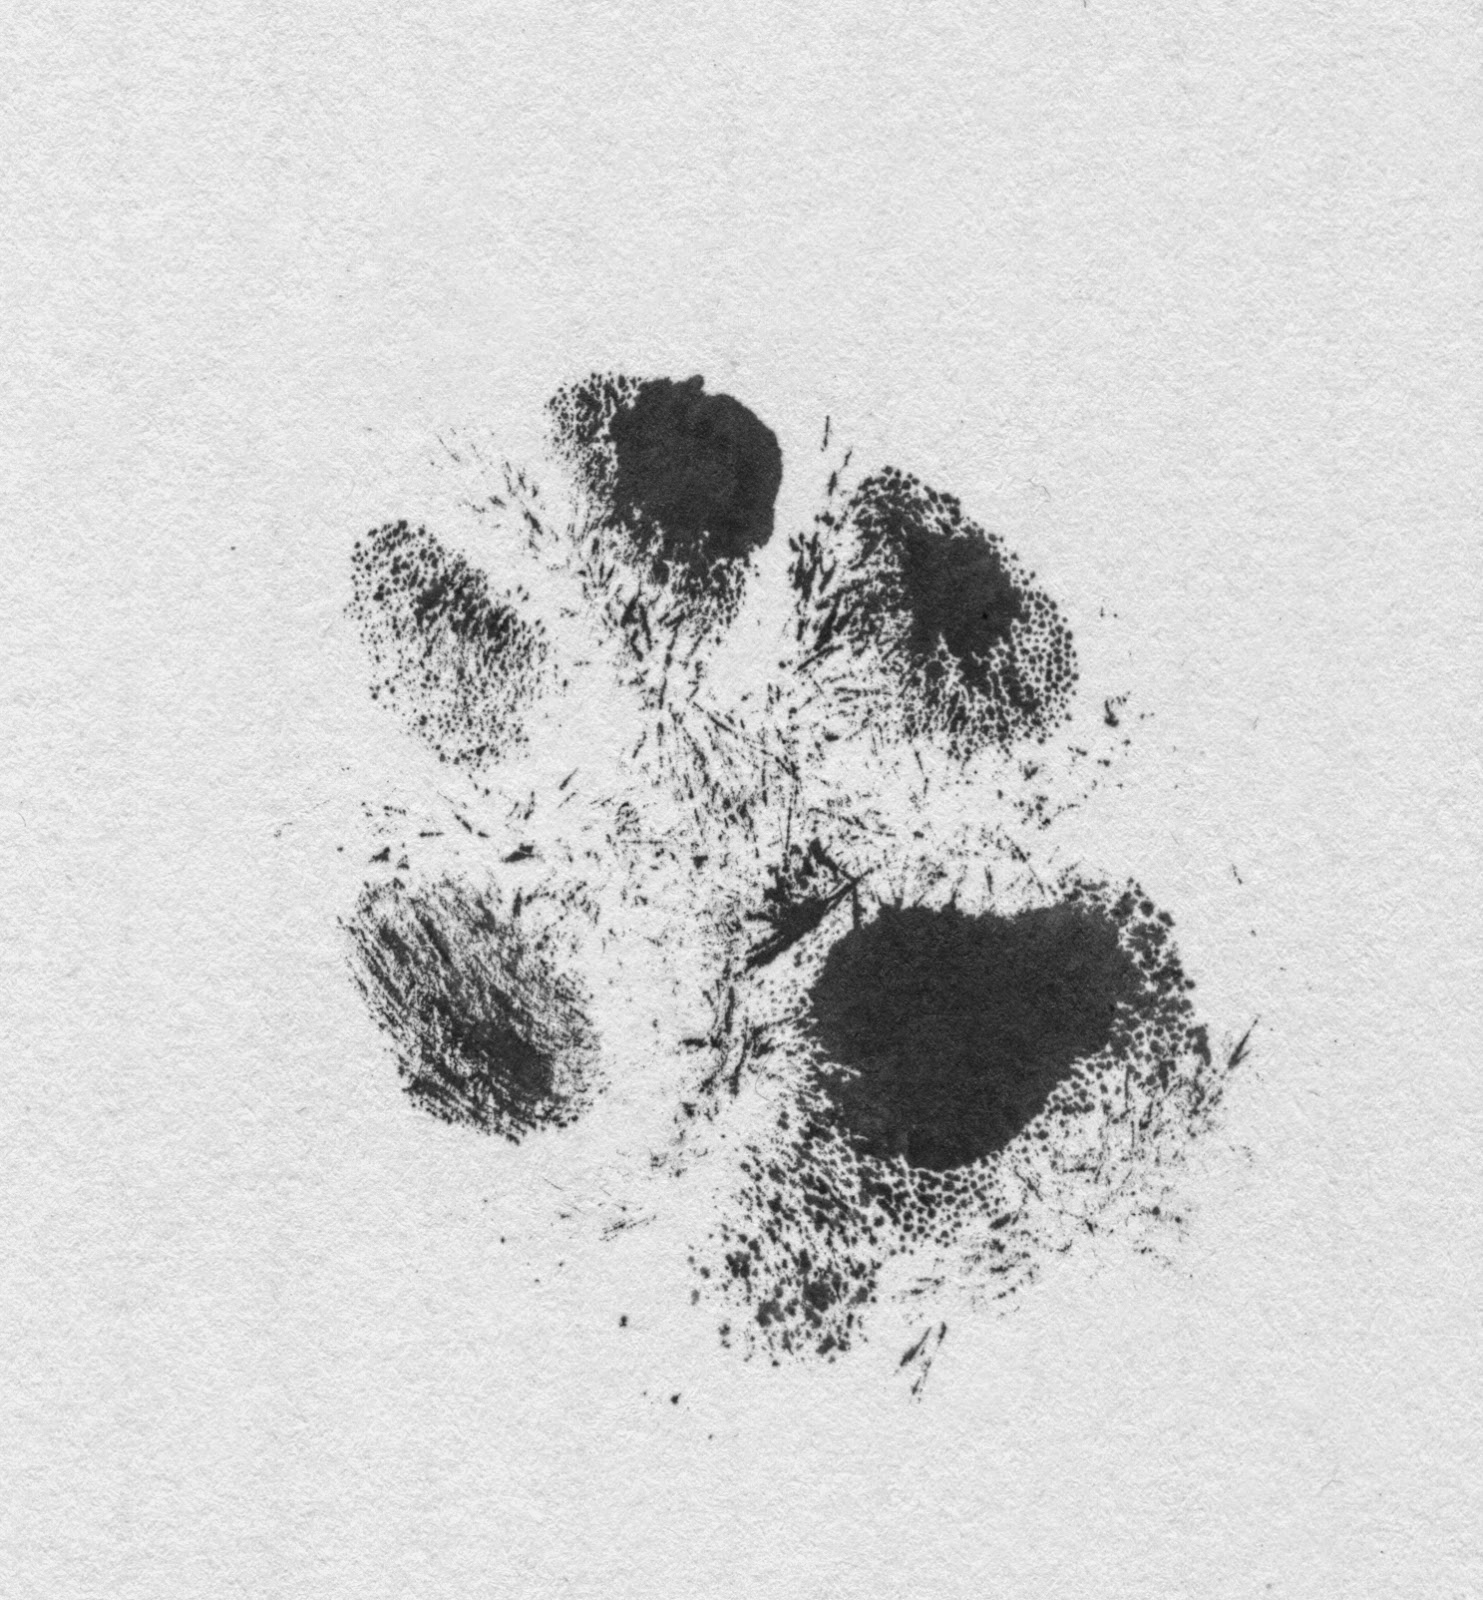 Midnight's paw print